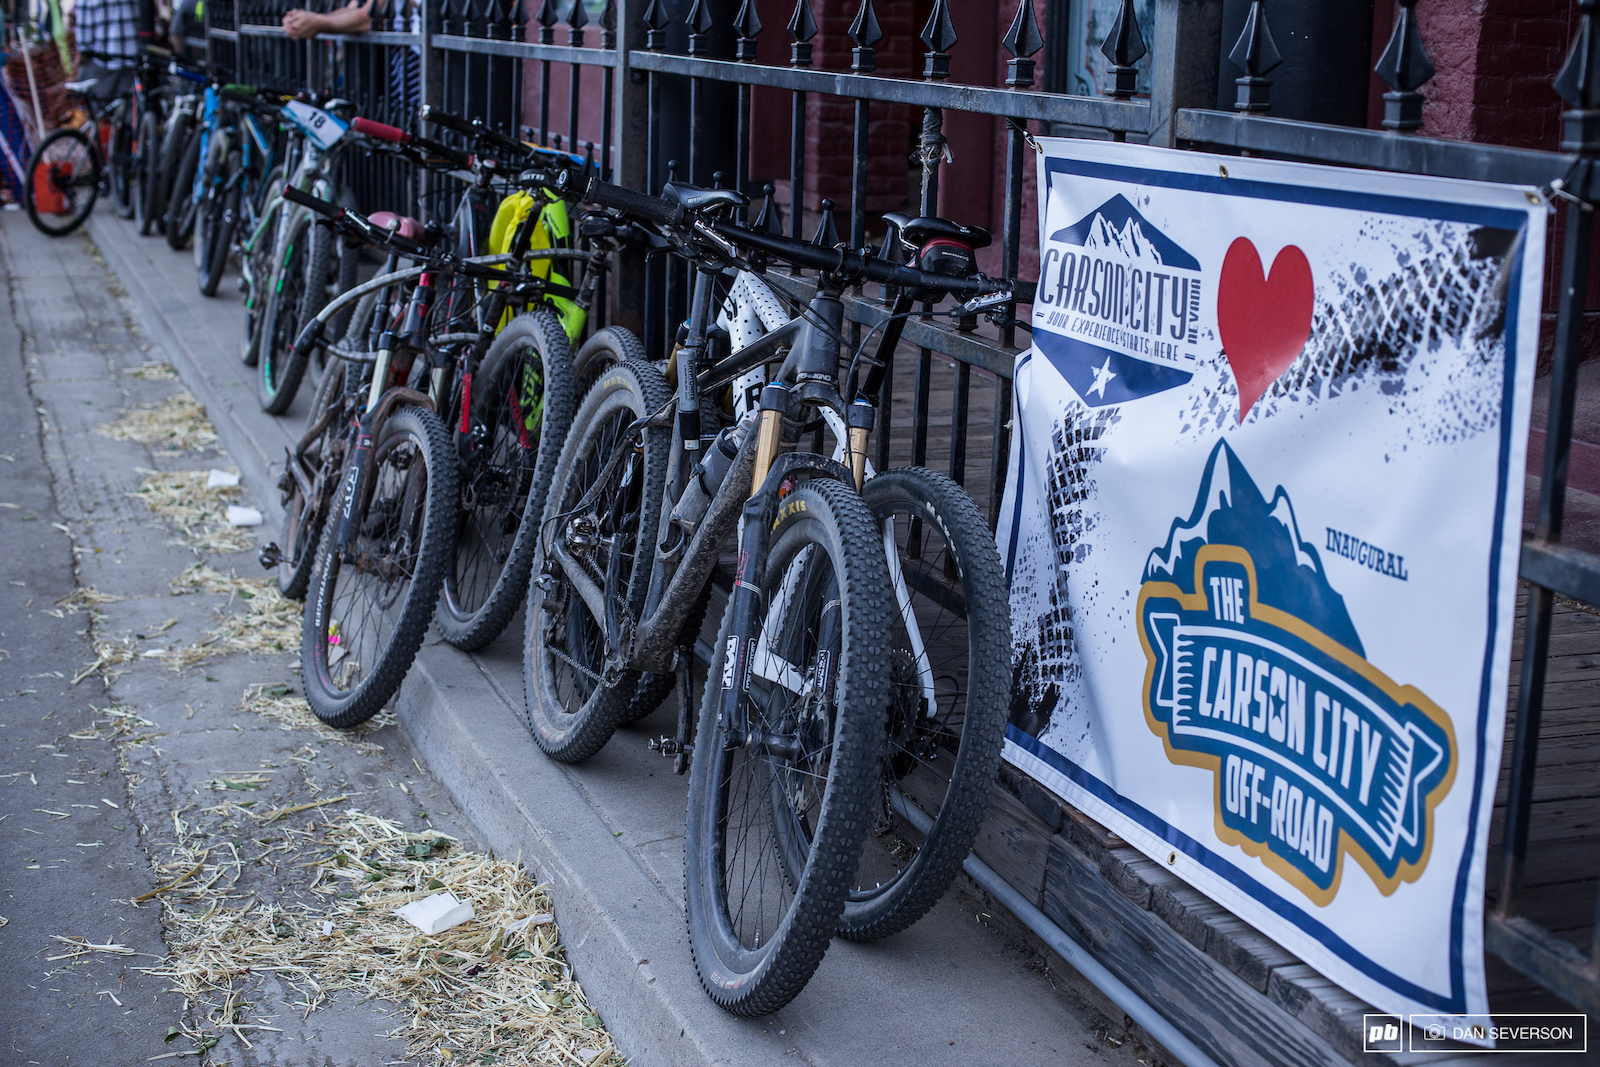 Yeah there were a few bikes in town over the weekend. Oh and did we mention the entire city was approved for open-container . Good times were had.